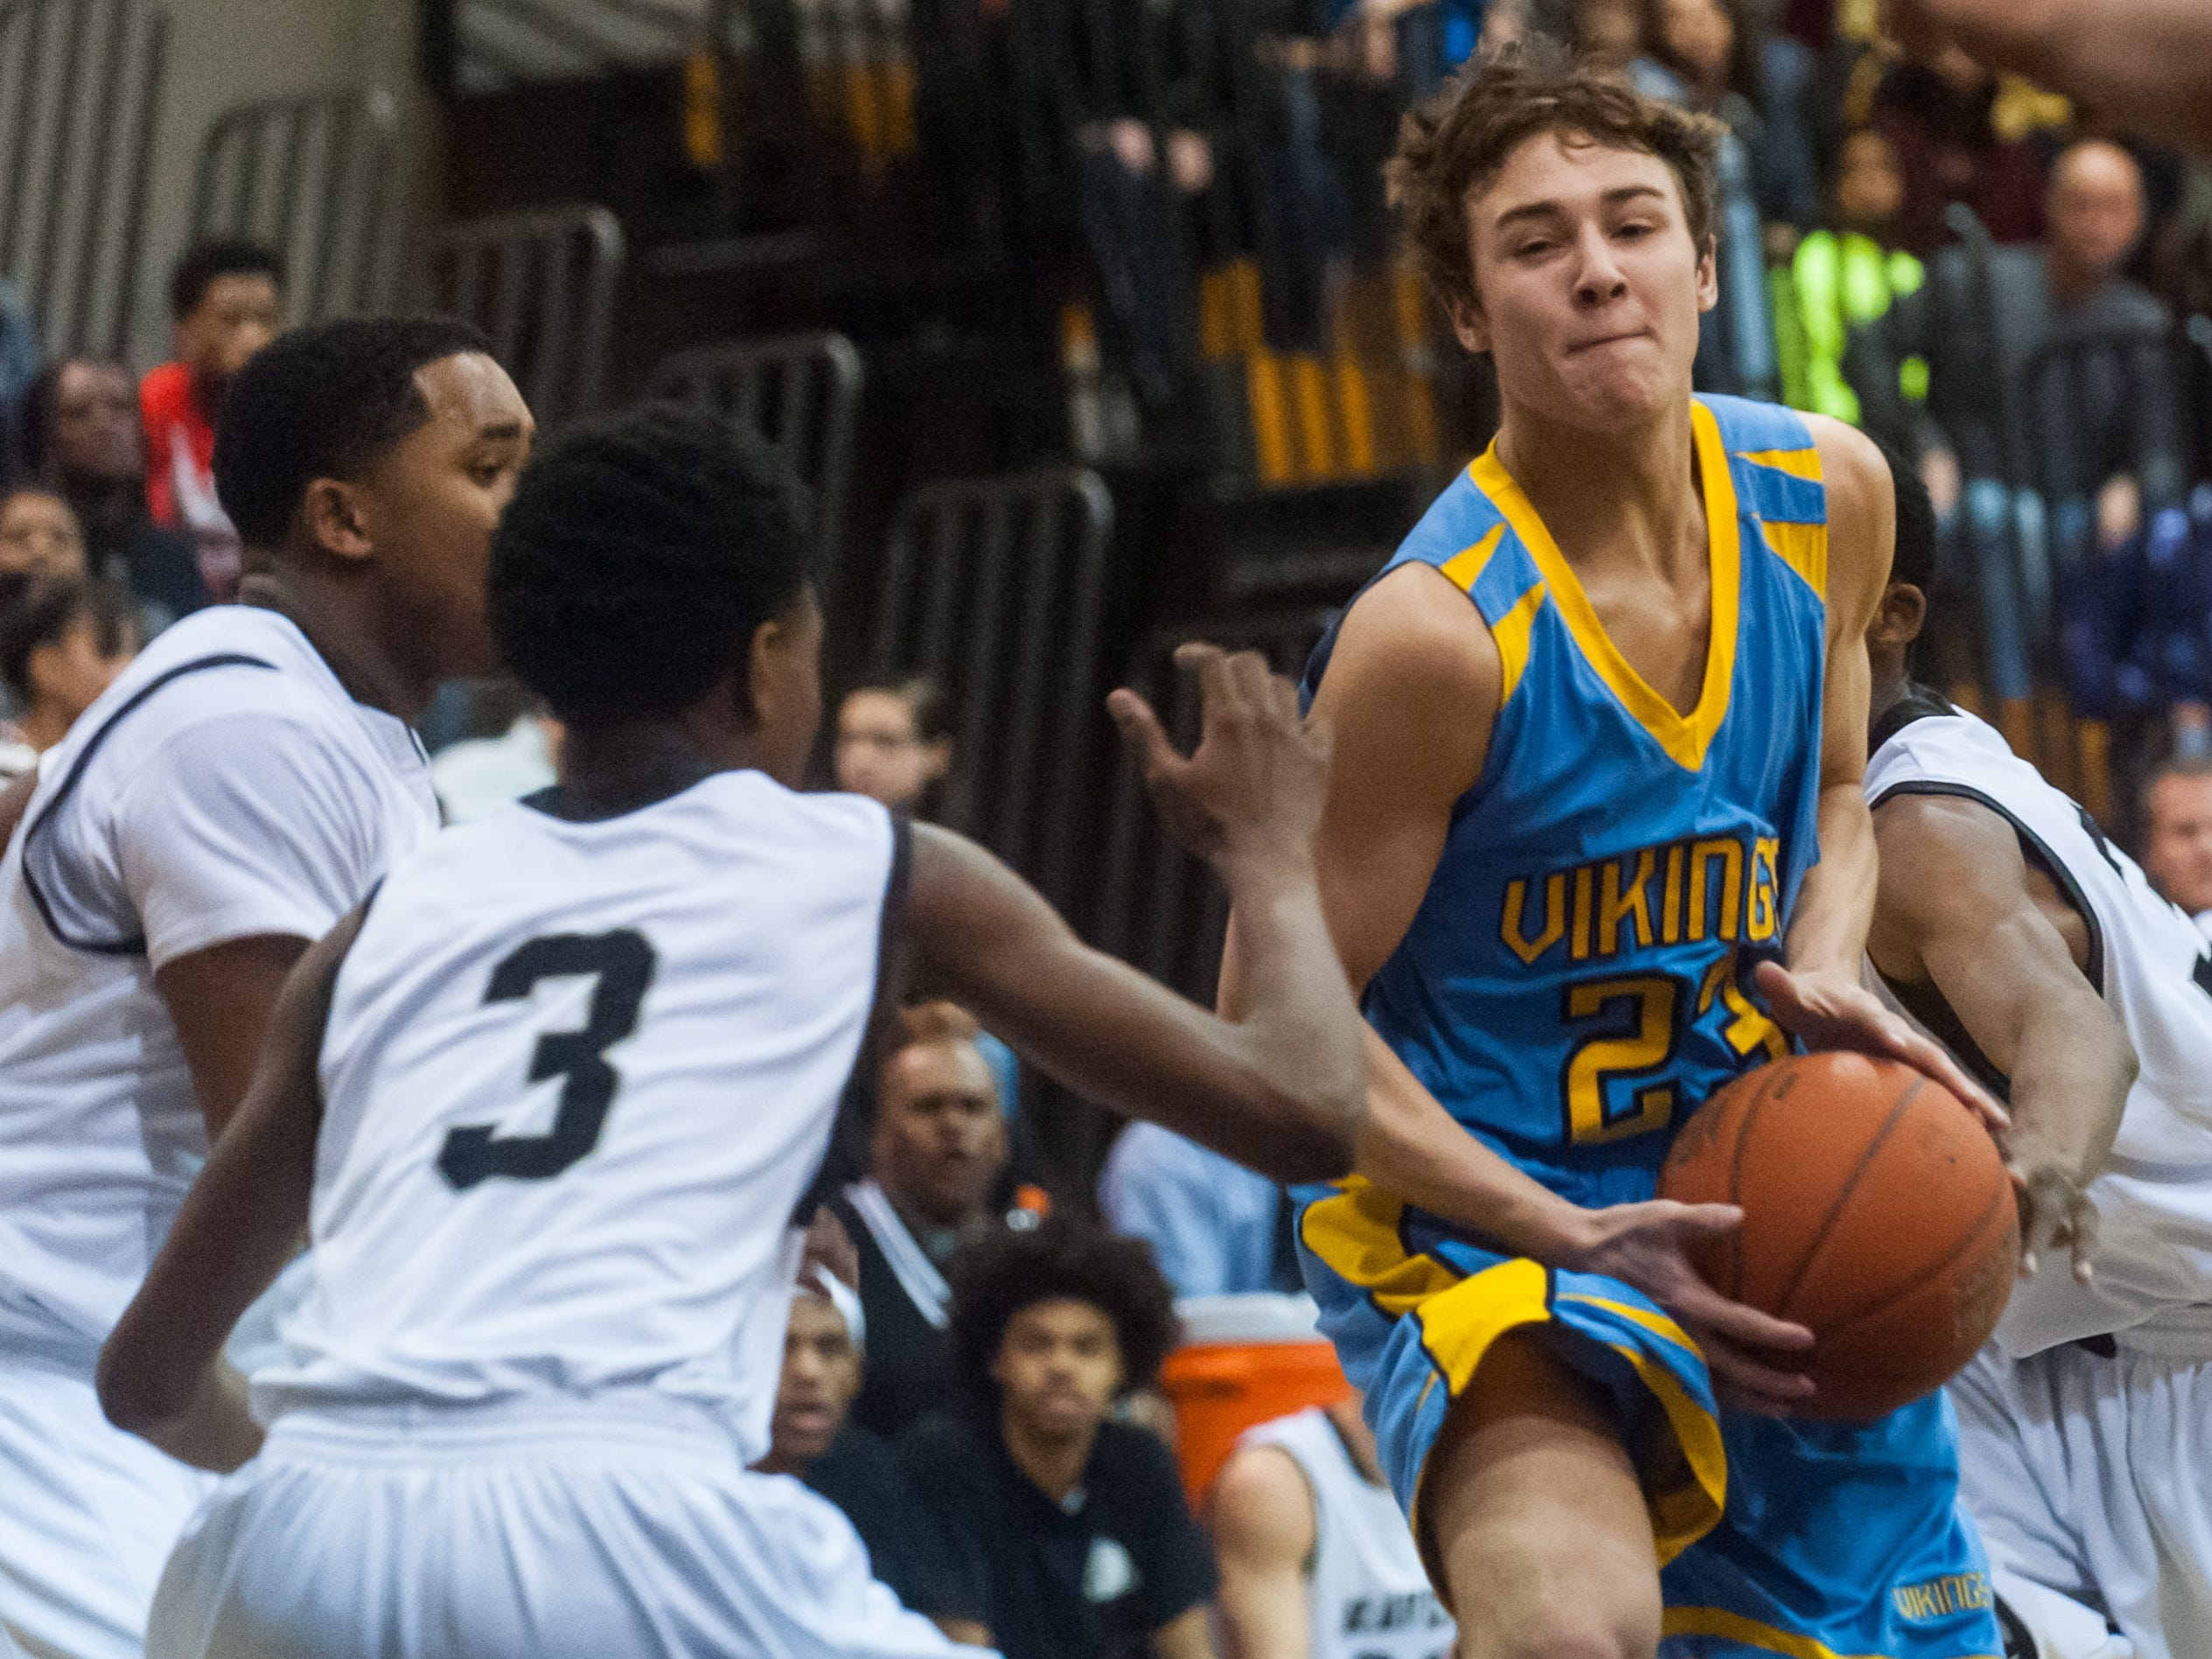 Cape Henlopen guard Drew Mulcahy (23) looks to pass against Sussex Tech on Friday night at Sussex Tech.